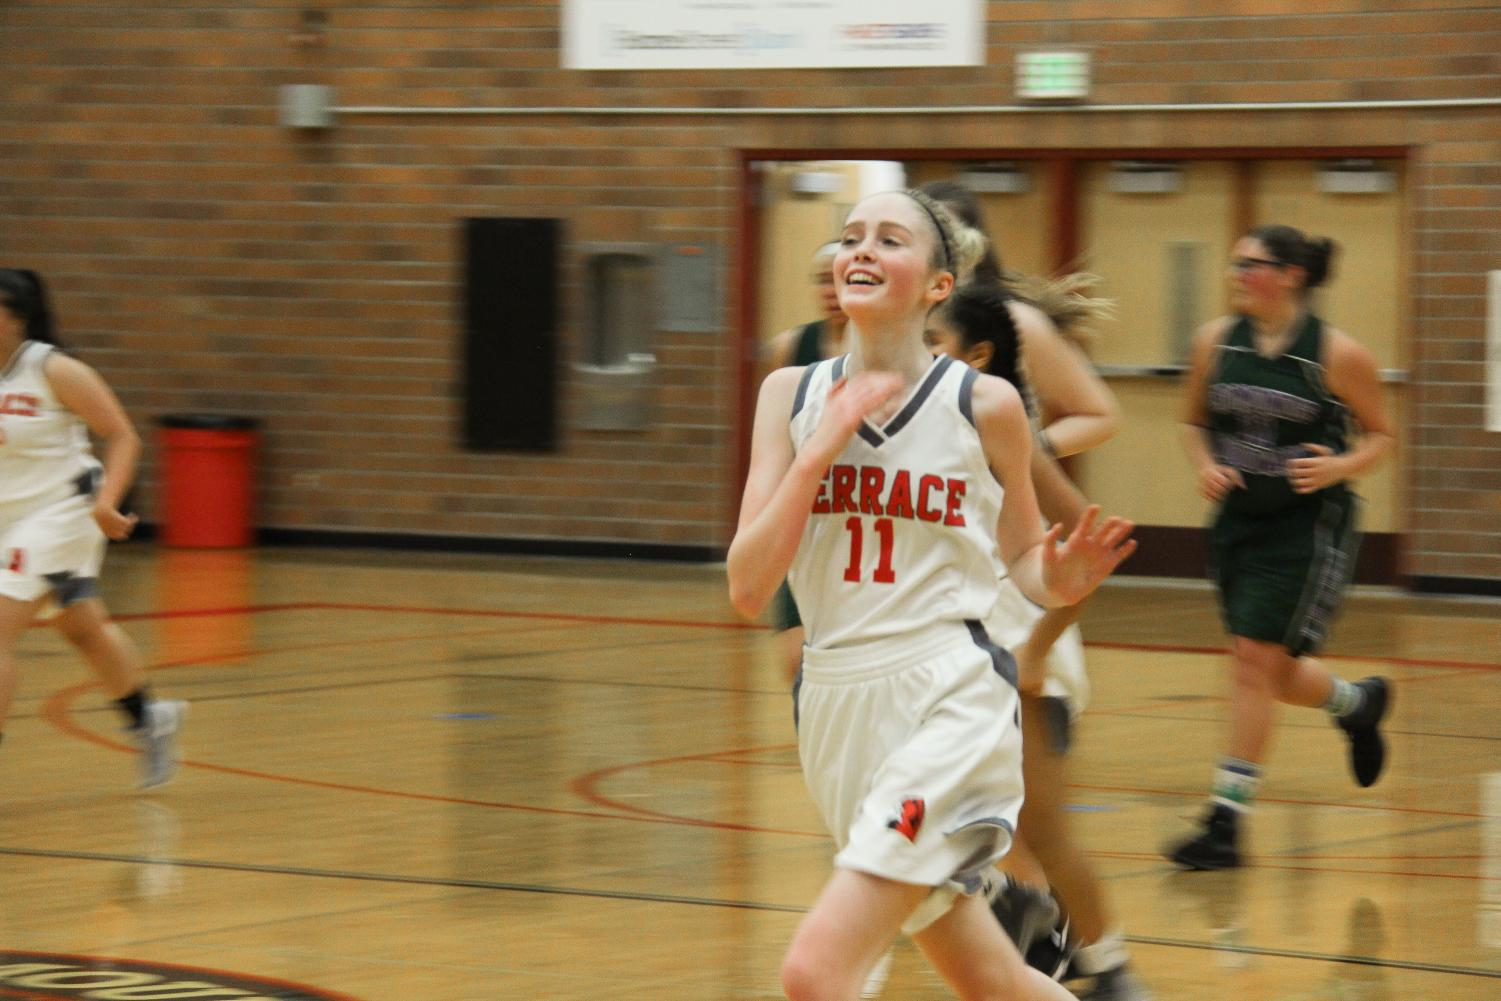 Freshman+wing+Taylor+Stevens+smiles+and+runs+back+on+defense+after+making+a+layup+basket+for+2+points.